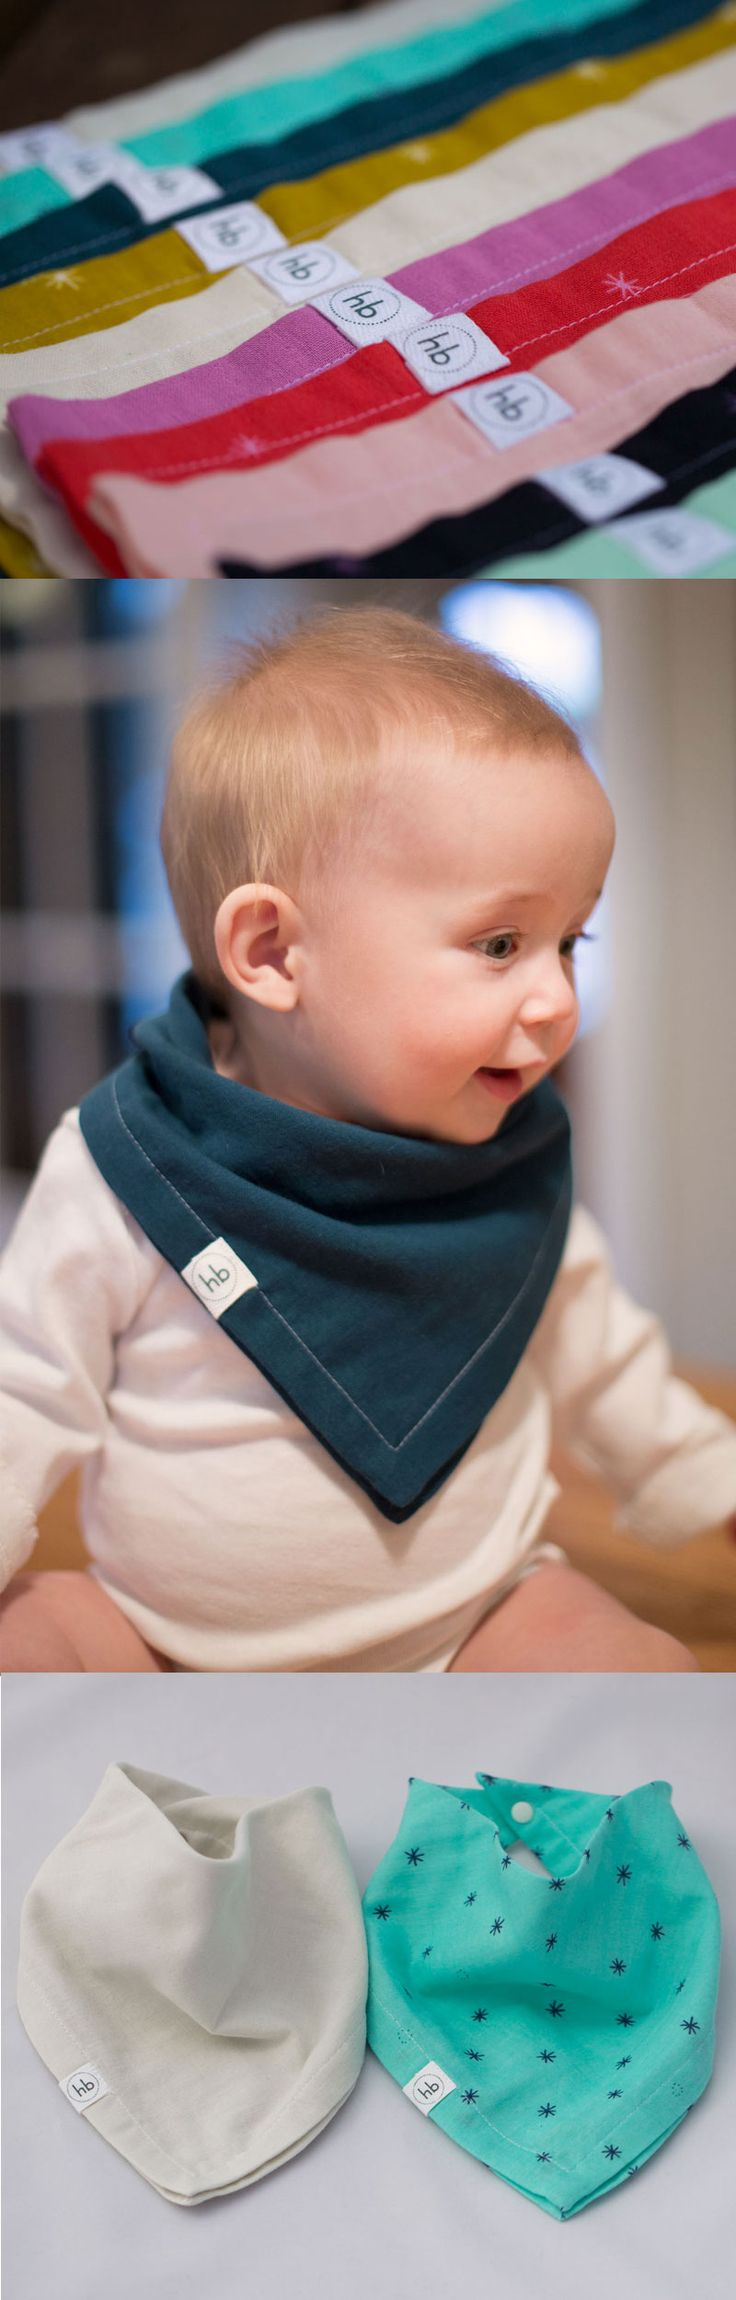 Ollie Bandana Drool Bib | Hemming Birds Boutique Soft, absorbent, stylish. Gender neutral colors included. Makes a great unique gift.